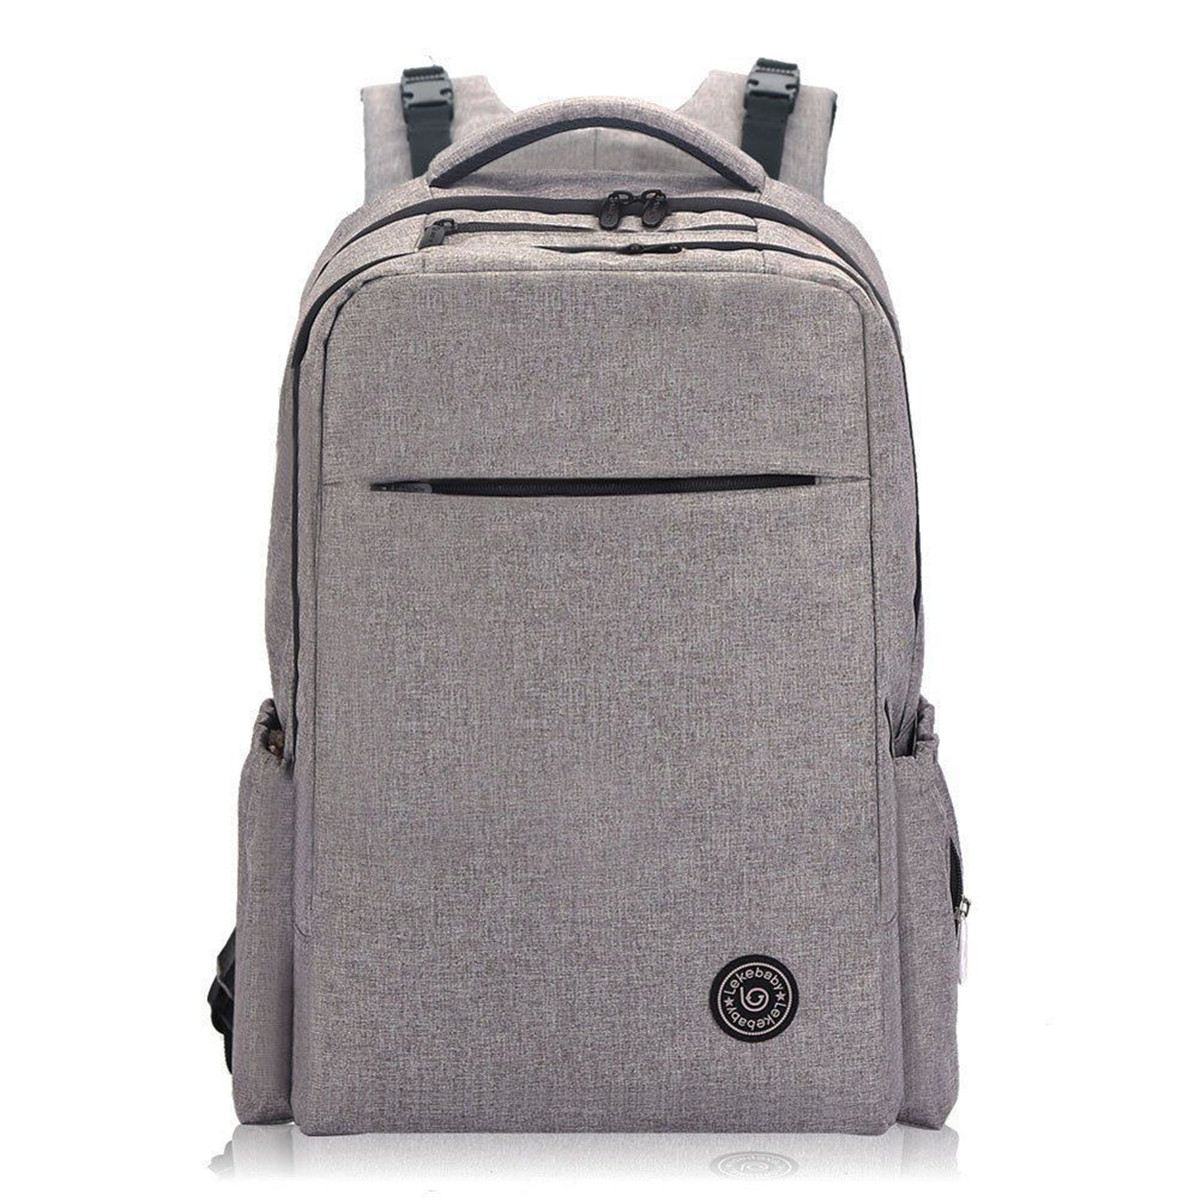 Mummy Maternity Nappy Bag Travel Backpack Large Capacity Baby Stroller Bags Baby Care Nursing Bag lady travel backpack large capacity mummy bag maternity nappy bag for baby care baby nursing bag lk mb 1108p01